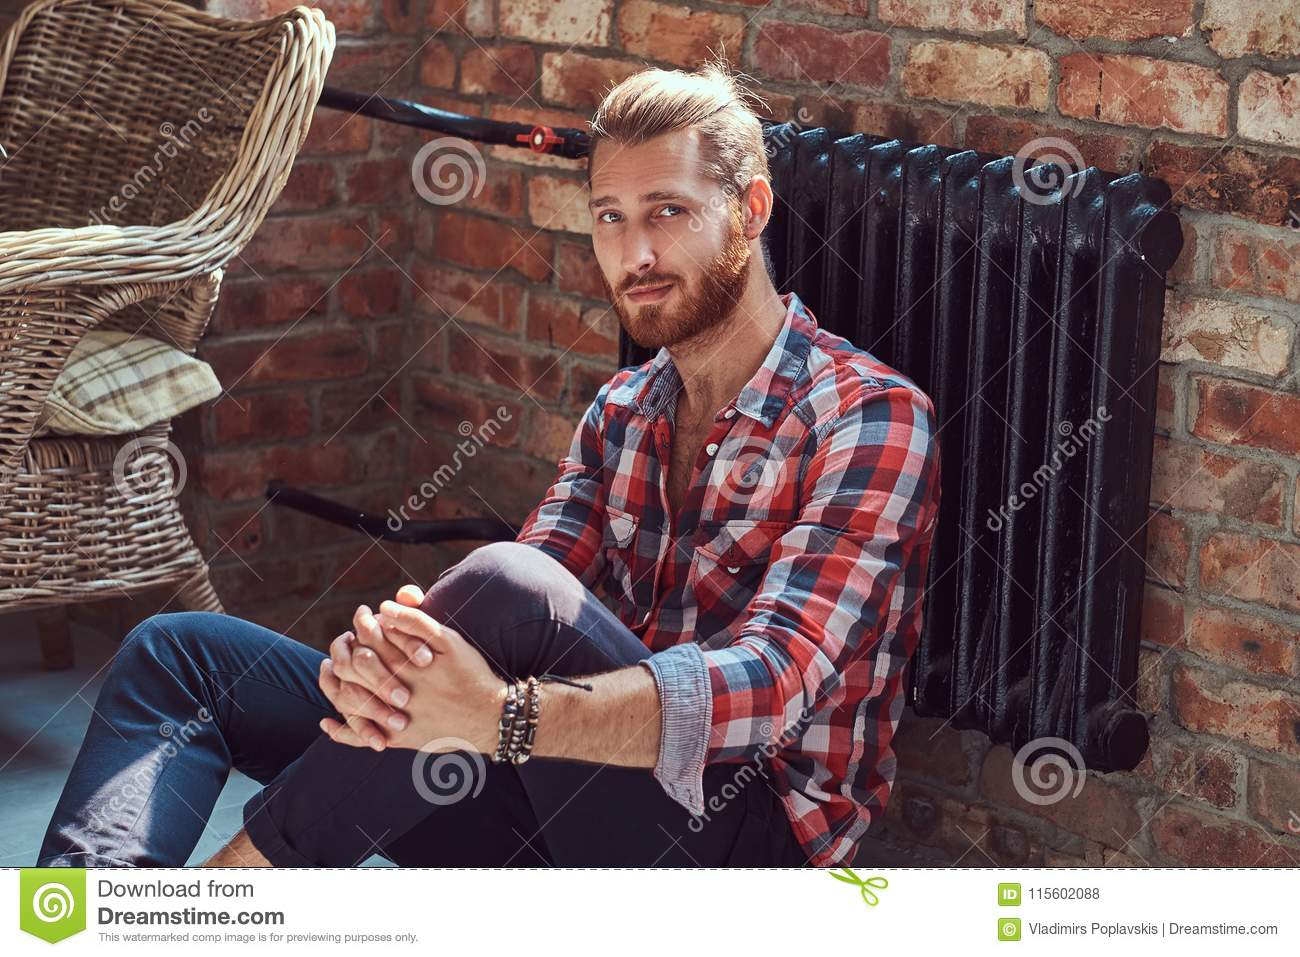 Young handsome redhead model man sits on a floor in the room with a loft interior.